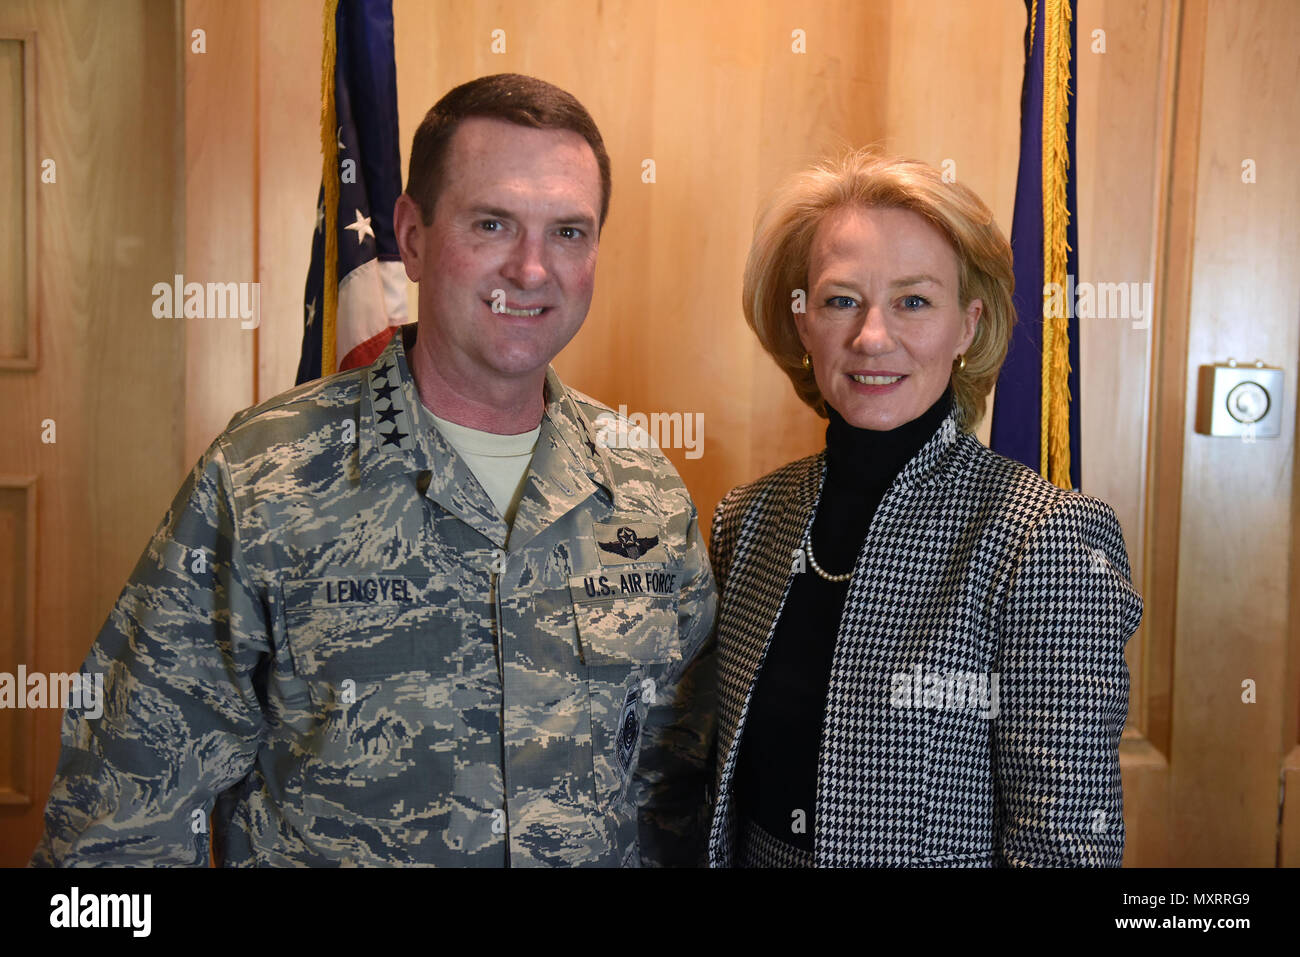 Air Force Gen. Joseph Lengyel, chief, National Guard Bureau, with Ambassador Alice Wells, U.S. ambassador to the Hashemite Kingdom of Jordan, during a Thanksgiving troop visit, Nov. 27, 2016. (U.S. Army National Guard photo by Sgt. 1st Class Jim Greenhill) - Stock Image